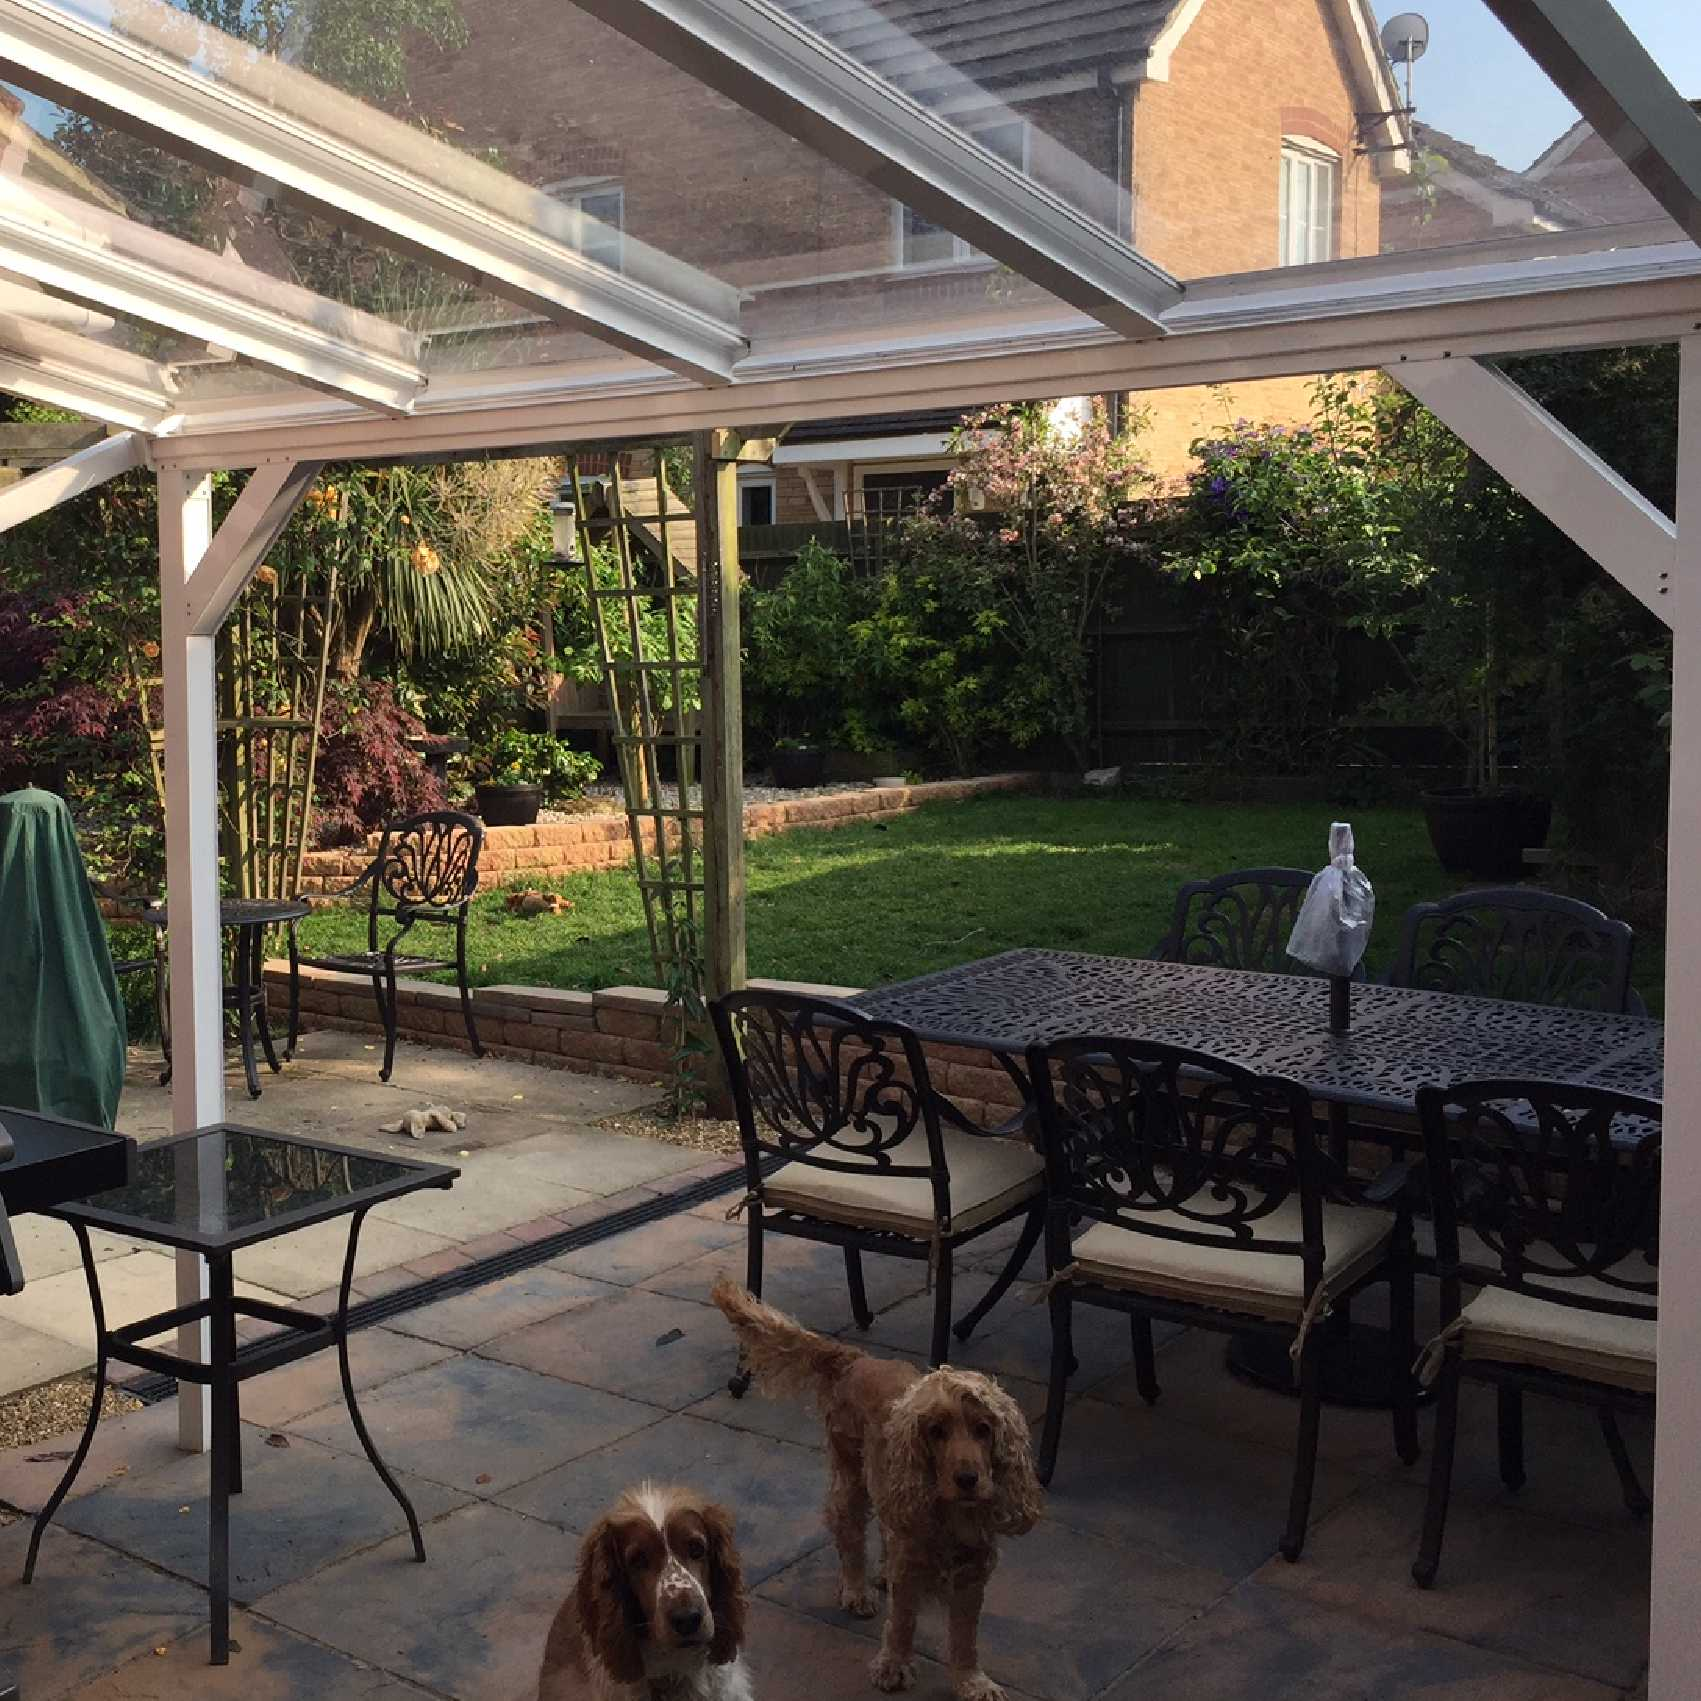 Affordable Omega Smart Lean-To Canopy UNGLAZED for 6mm Glazing - 6.3m (W) x 2.5m (P), (4) Supporting Posts